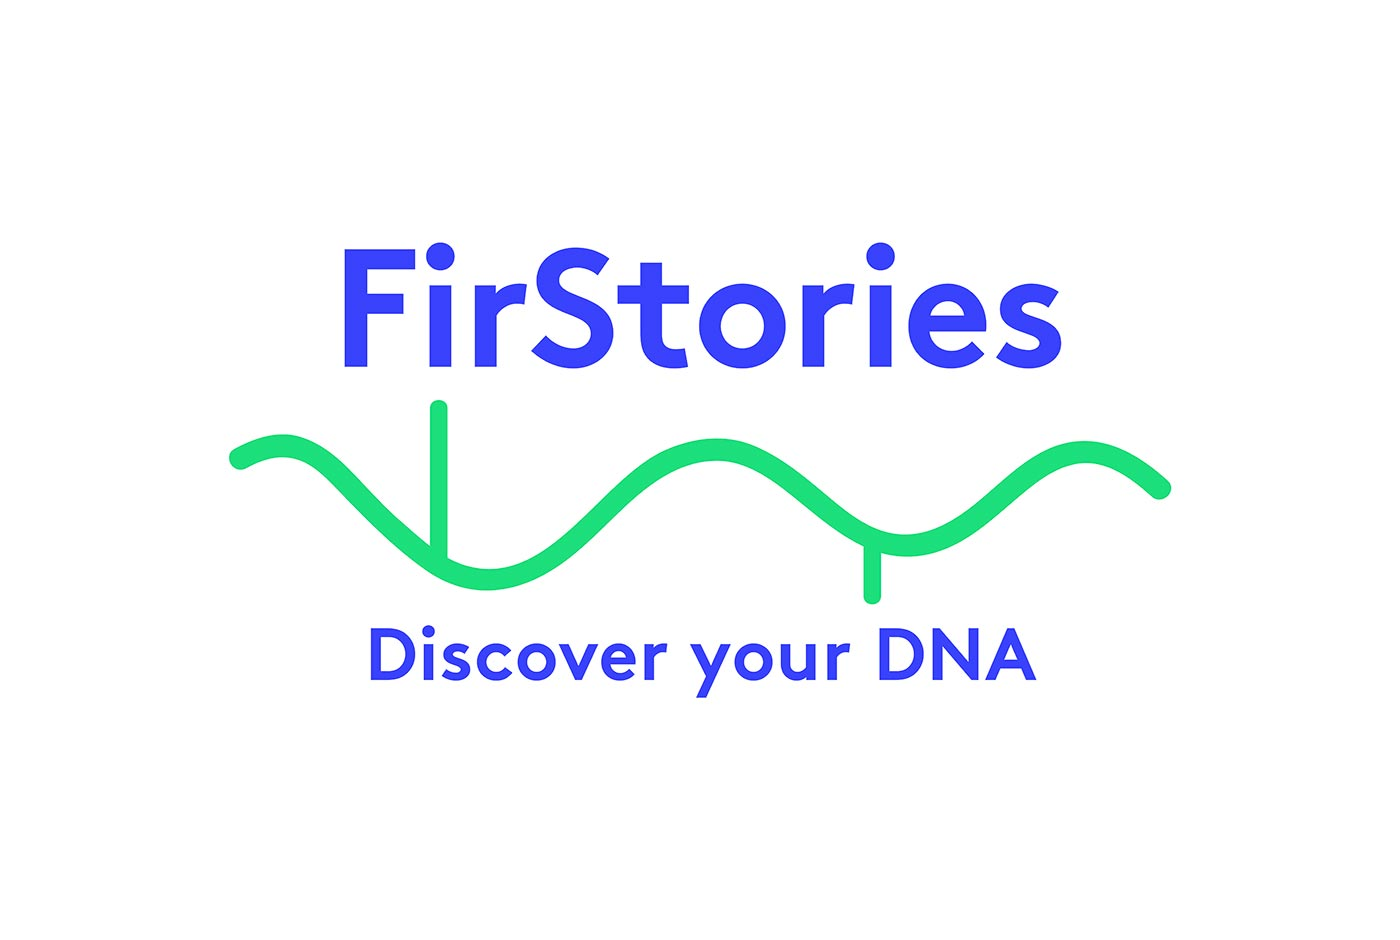 FirStories Identity